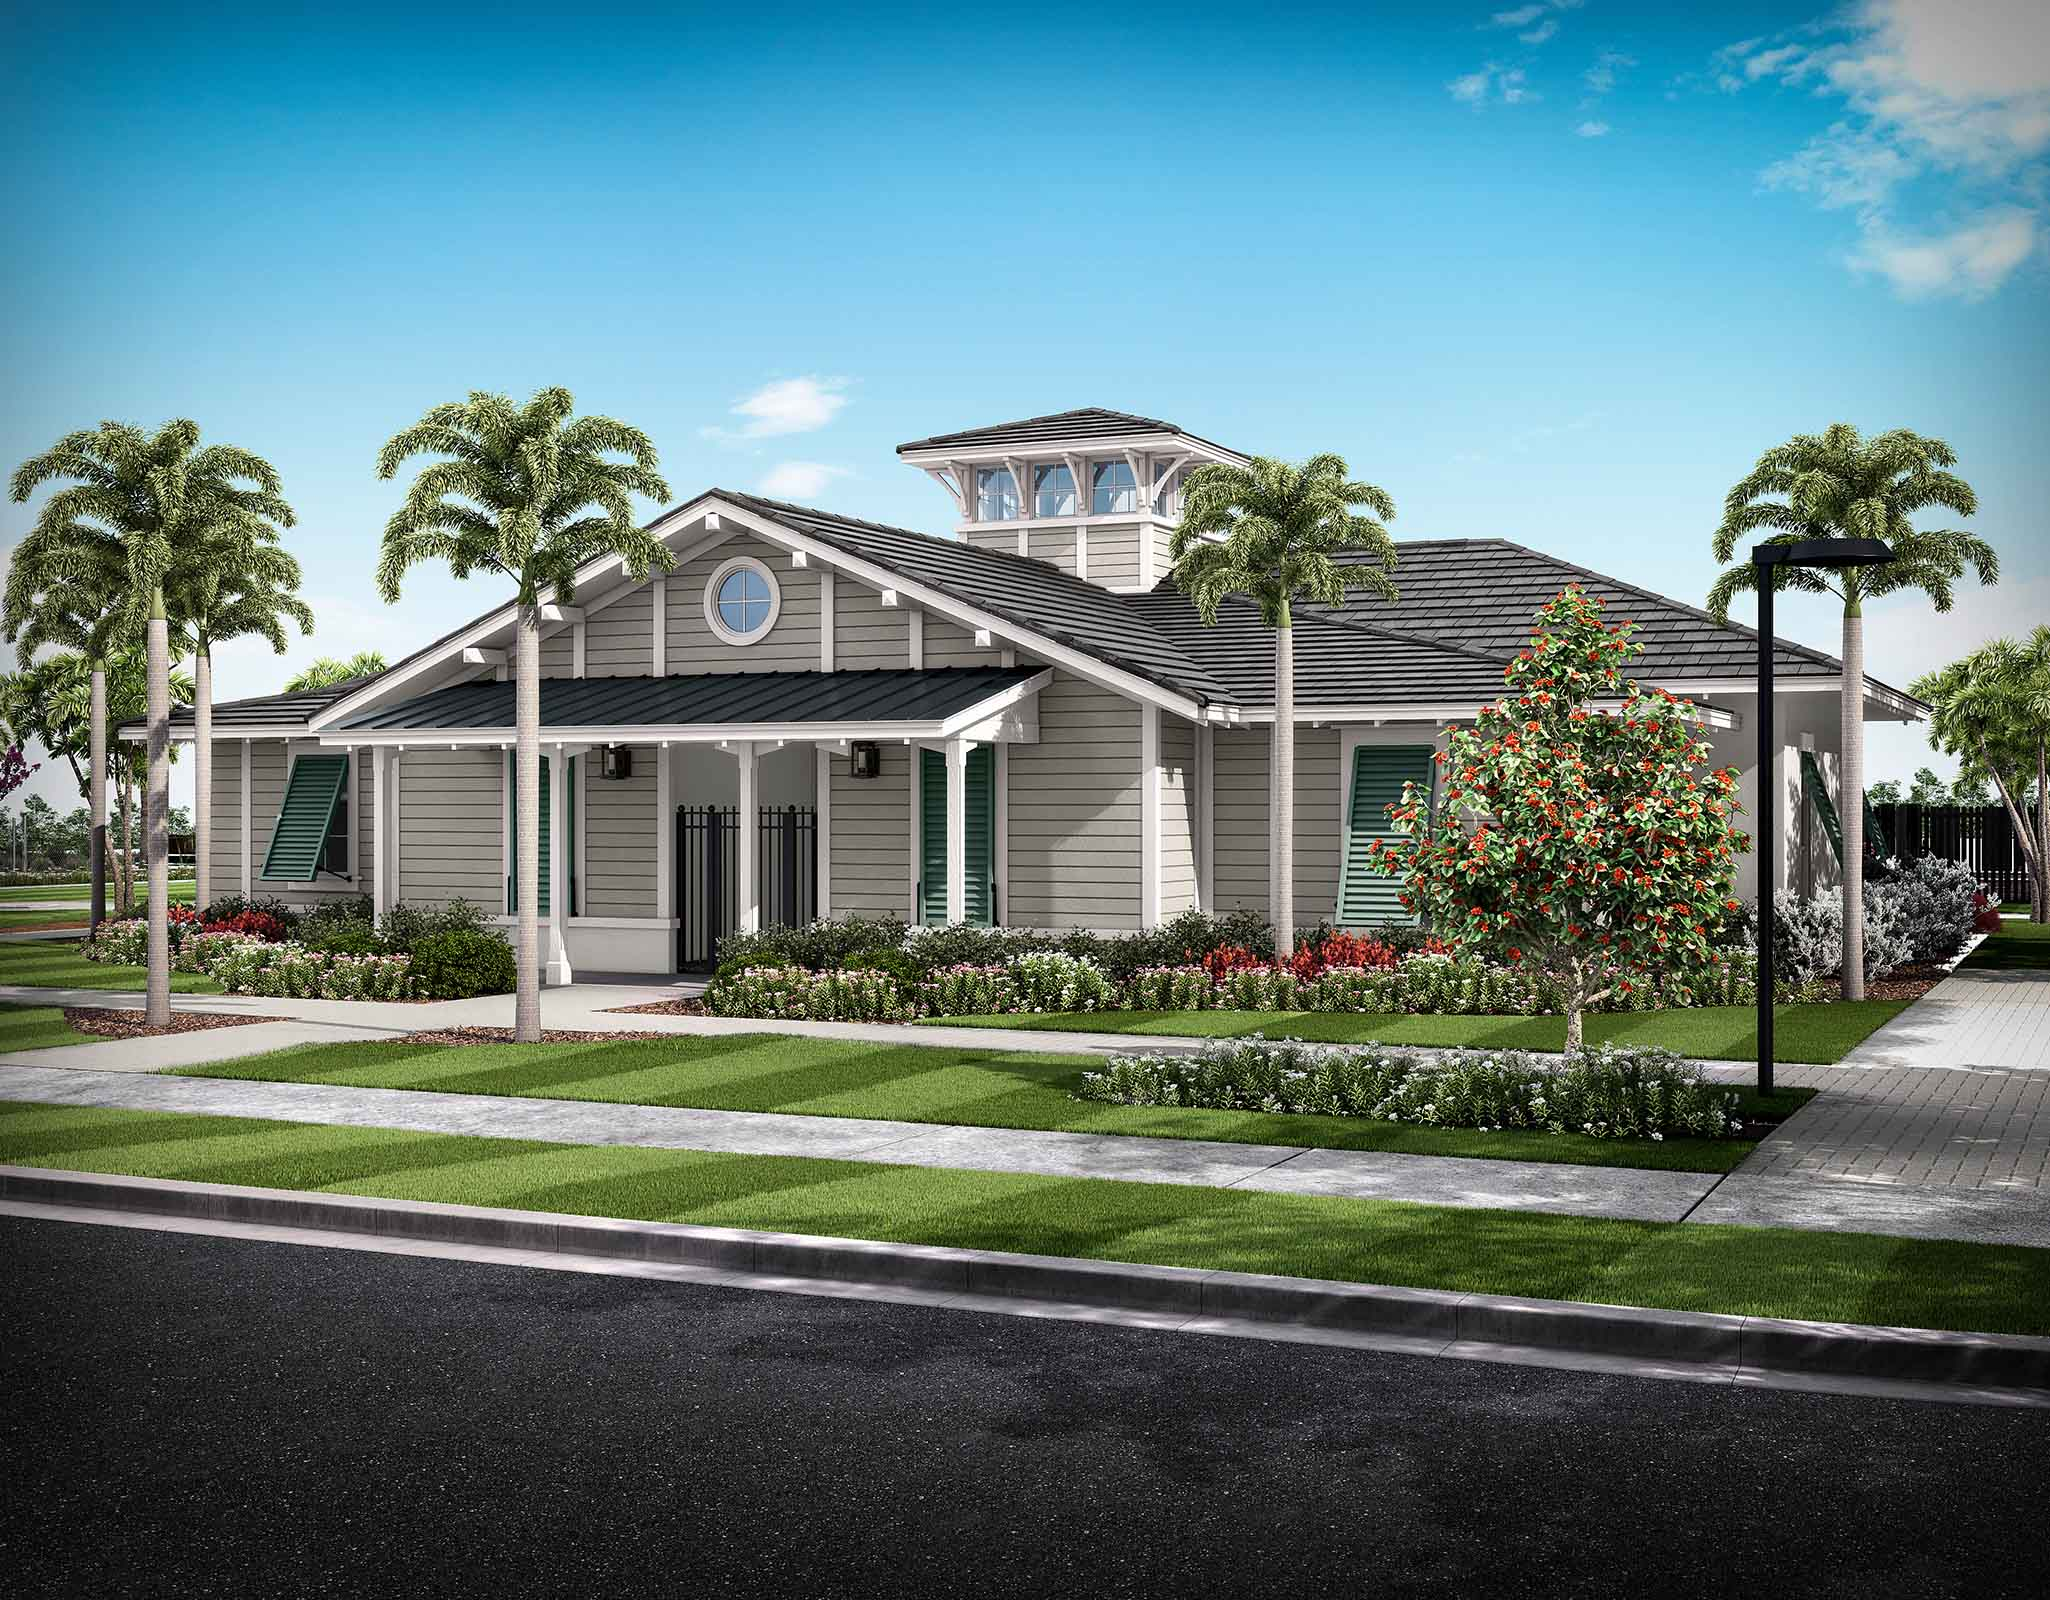 Tradition - Manderlie Amenities in Port St. Lucie Florida by Mattamy Homes